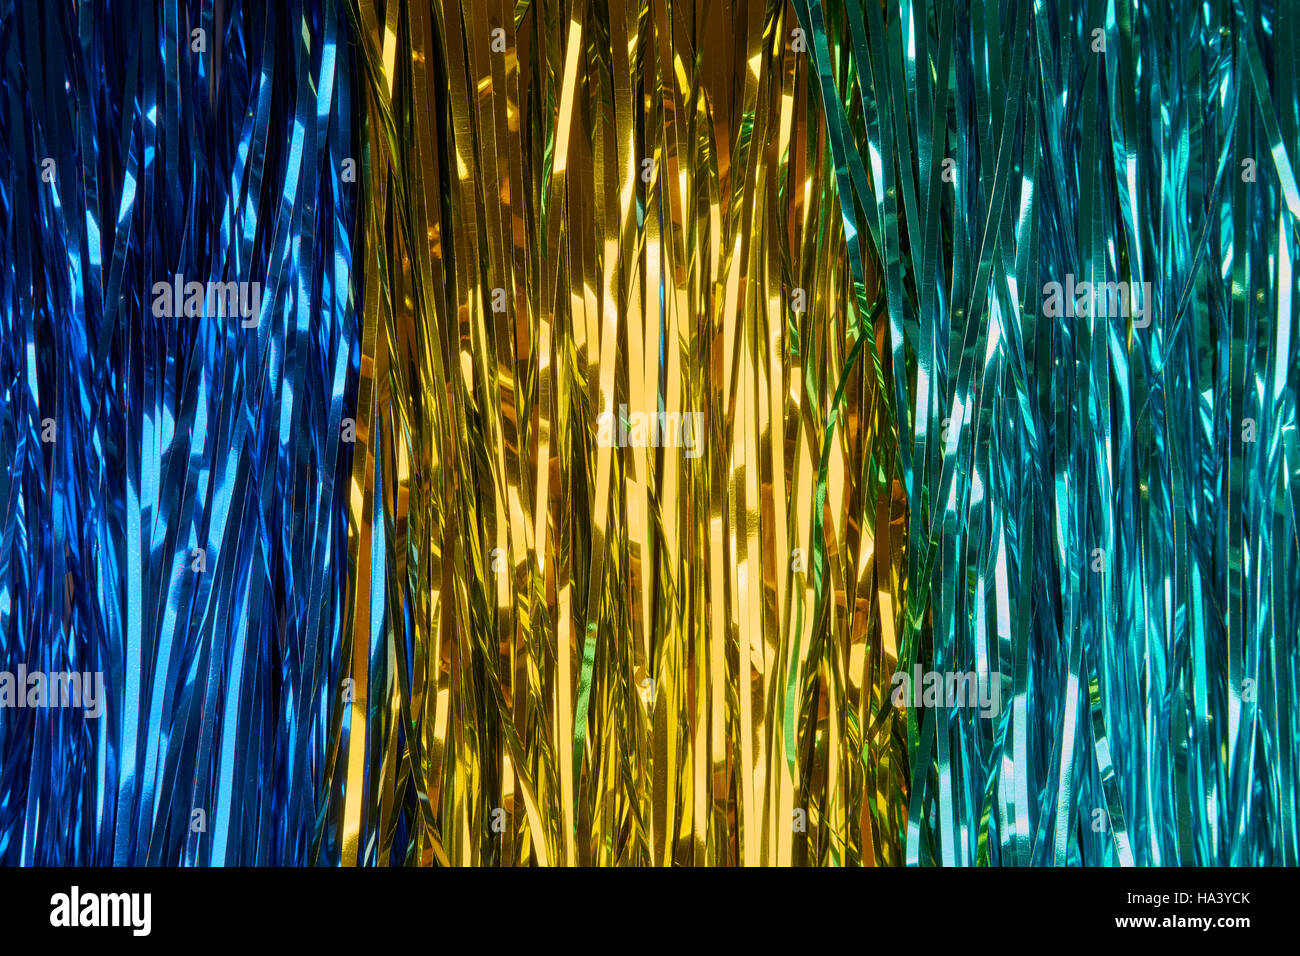 Christmas background with blue, yellow and green tinsel - Stock Image